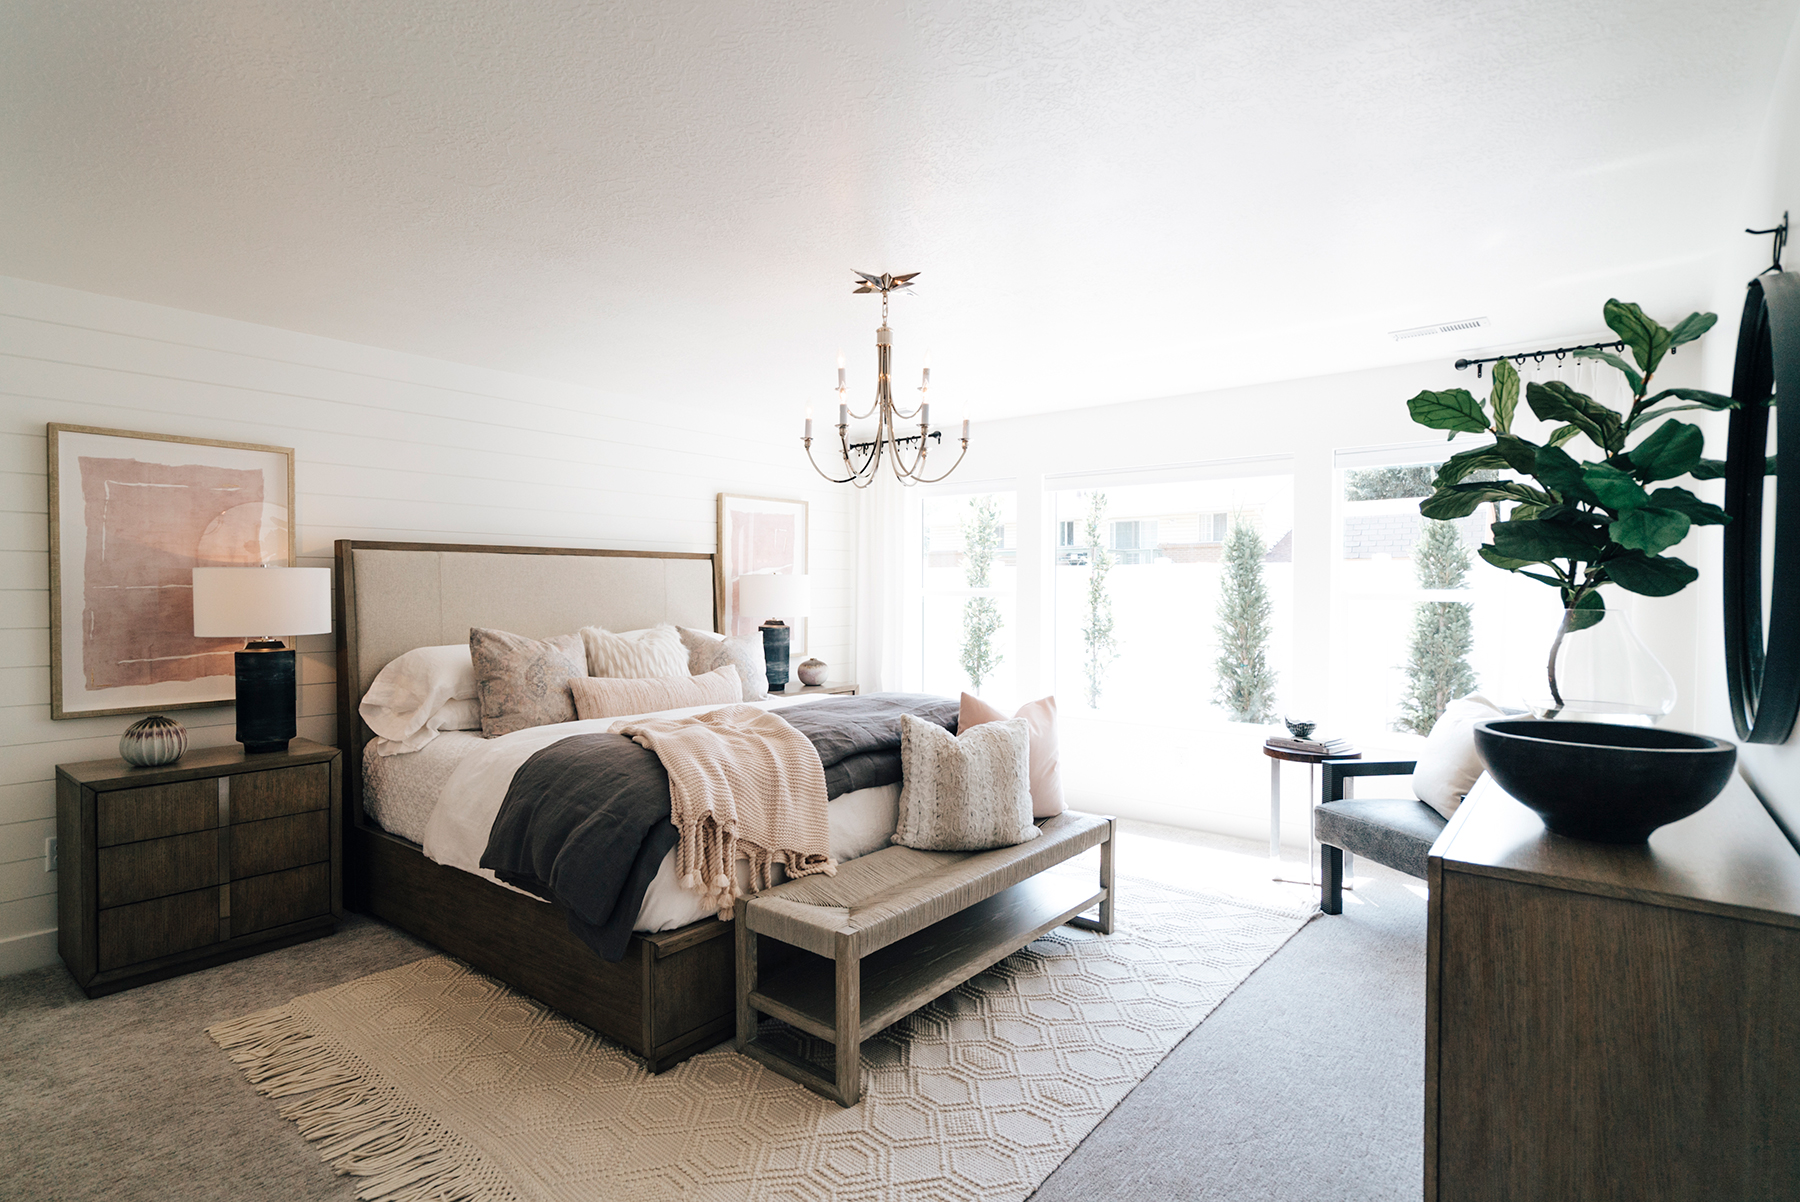 Northern Wasatch Parade of Homes Master Bedroom